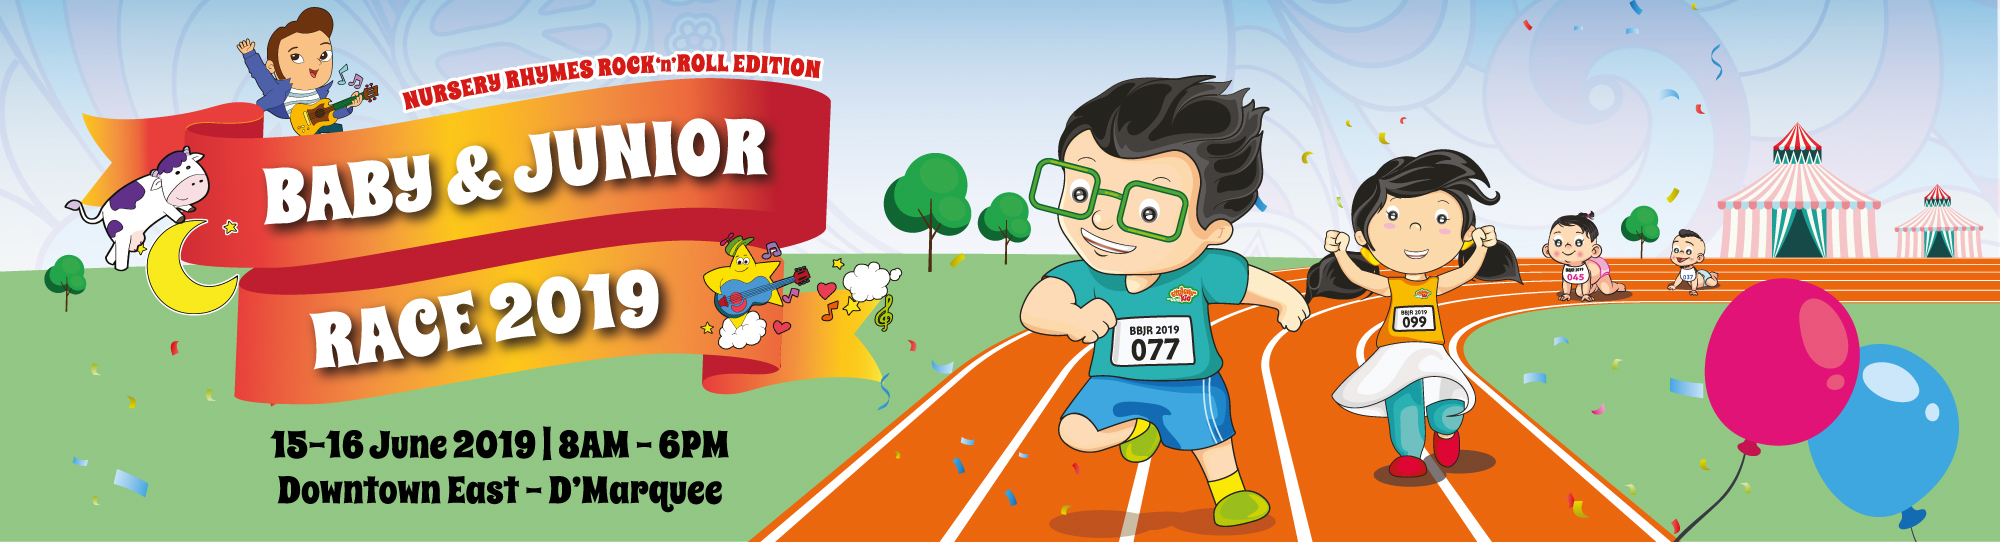 eXplorerkid's Baby & Junior Race 2019 Banner Image